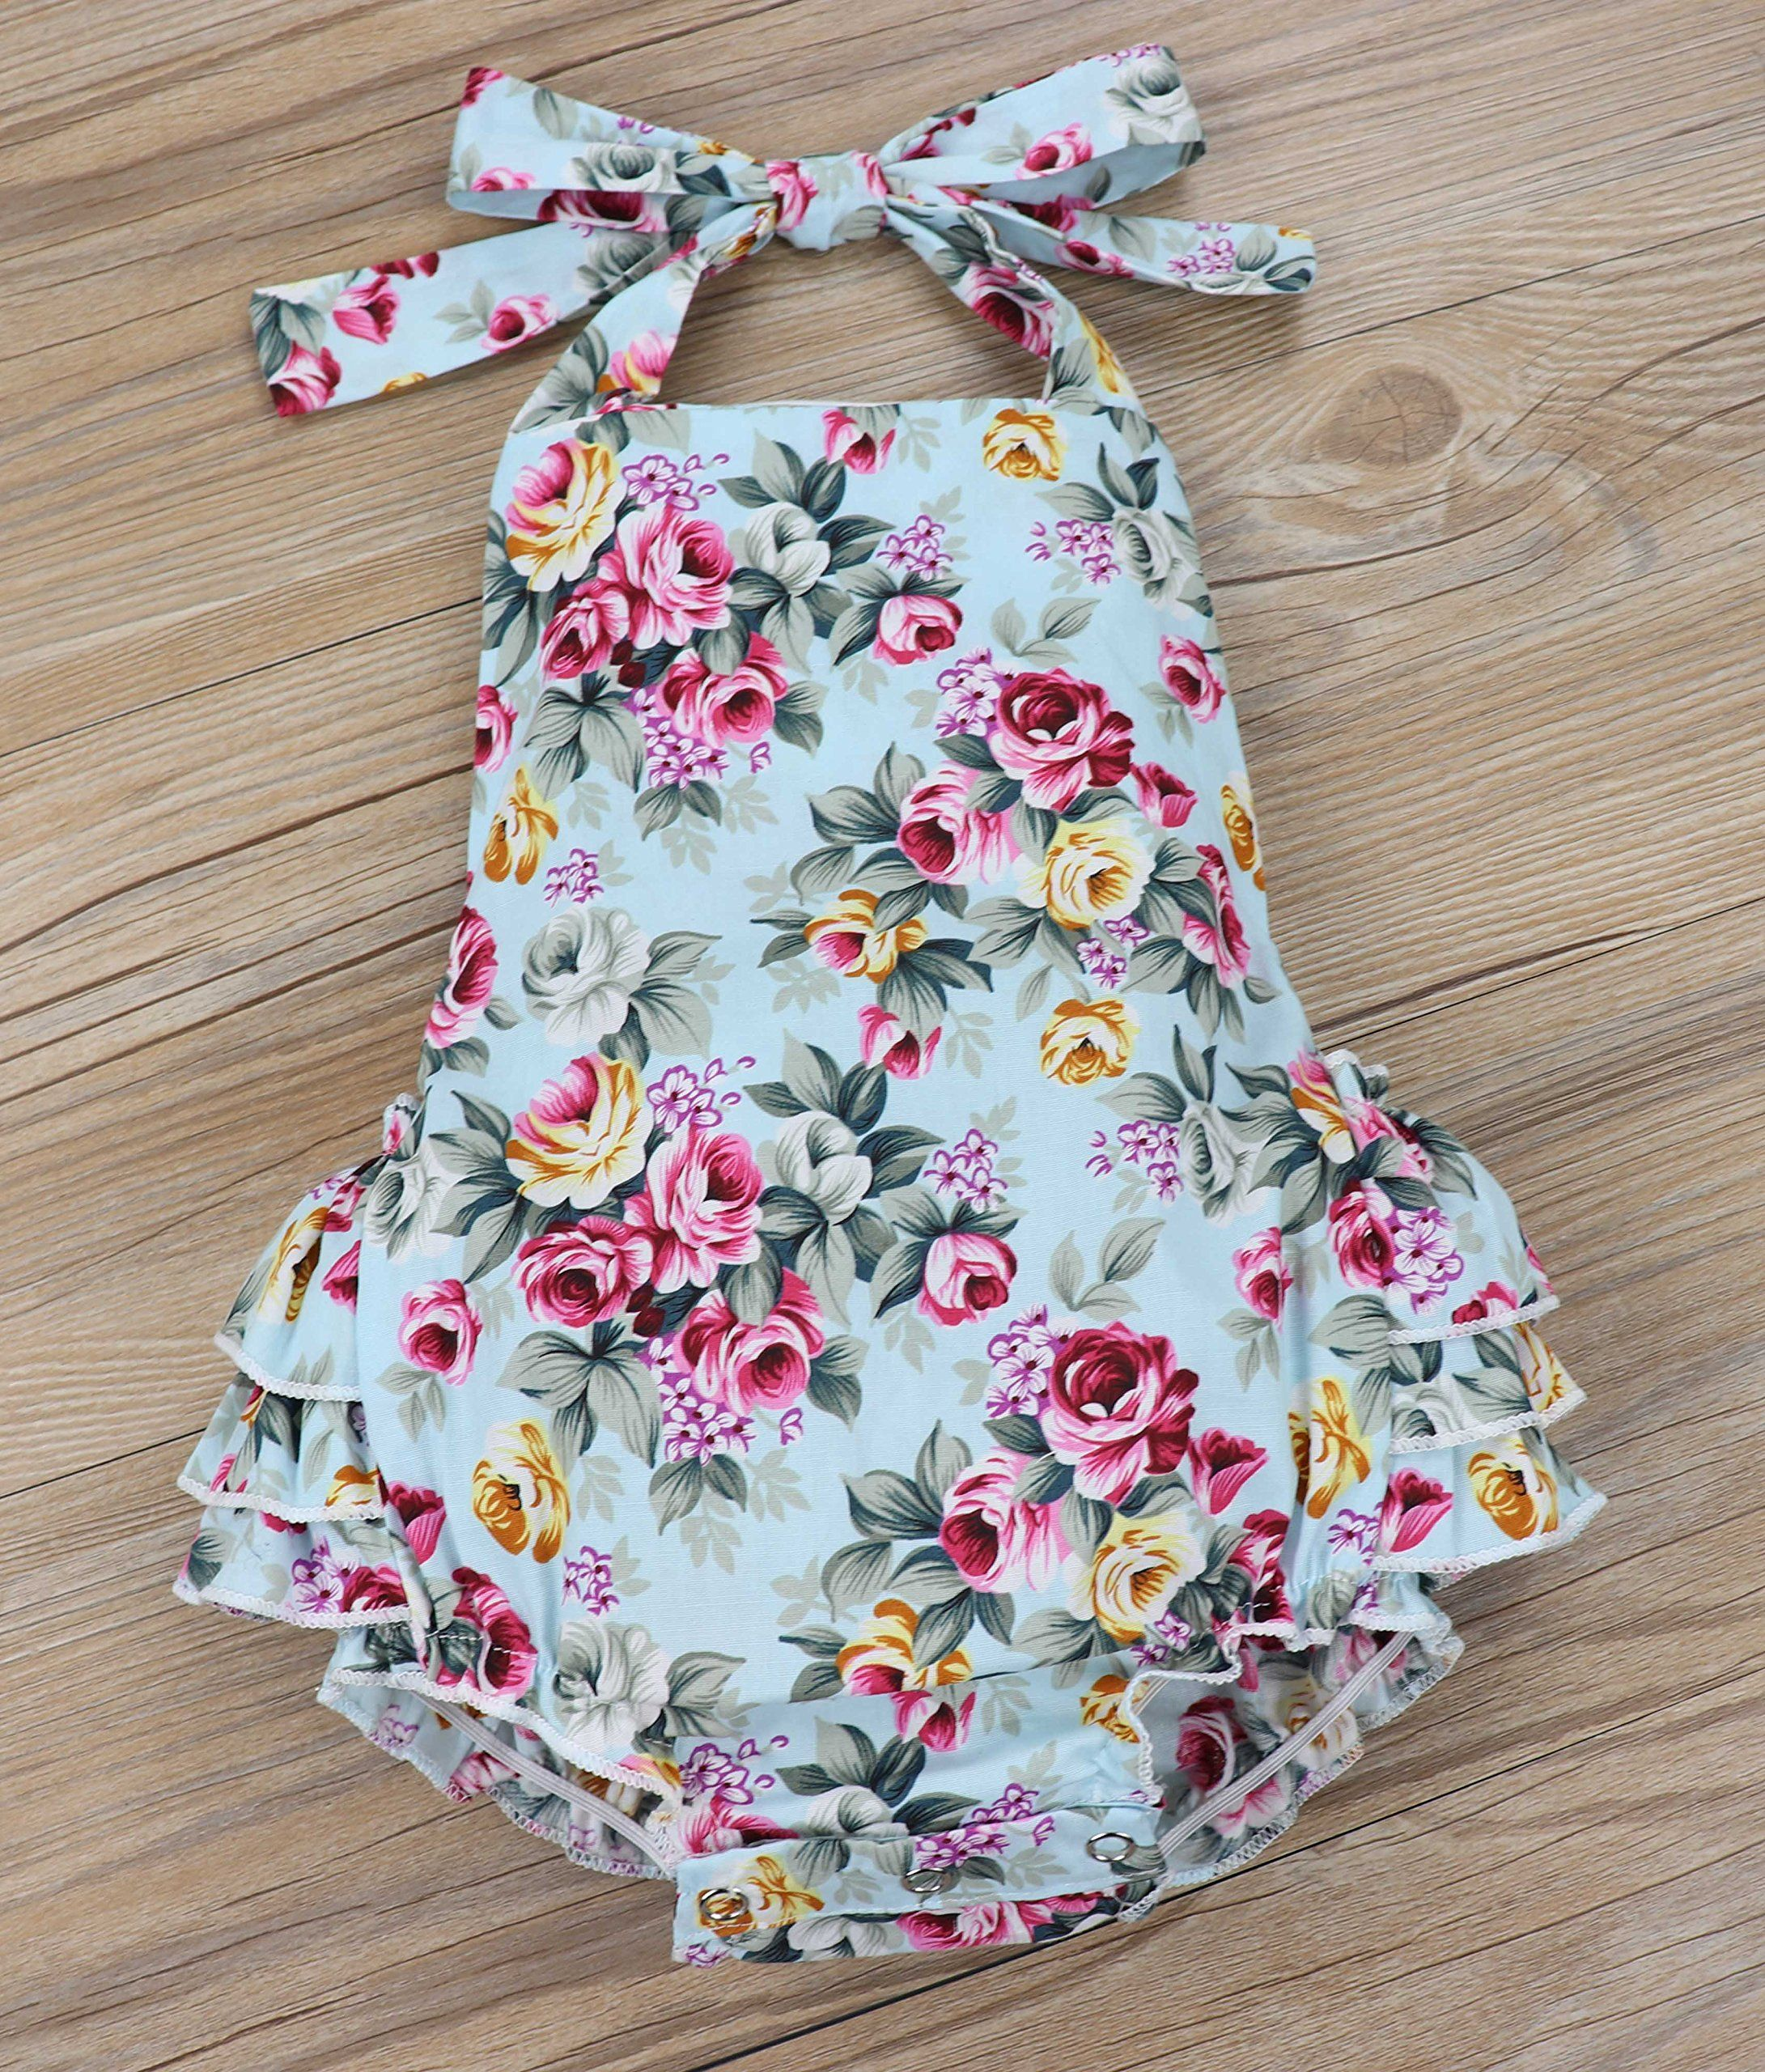 01a71856189 Yiner Baby Girls Floral Print Ruffles Romper Summer Clothes With Bowknot  Headband 1924 Months